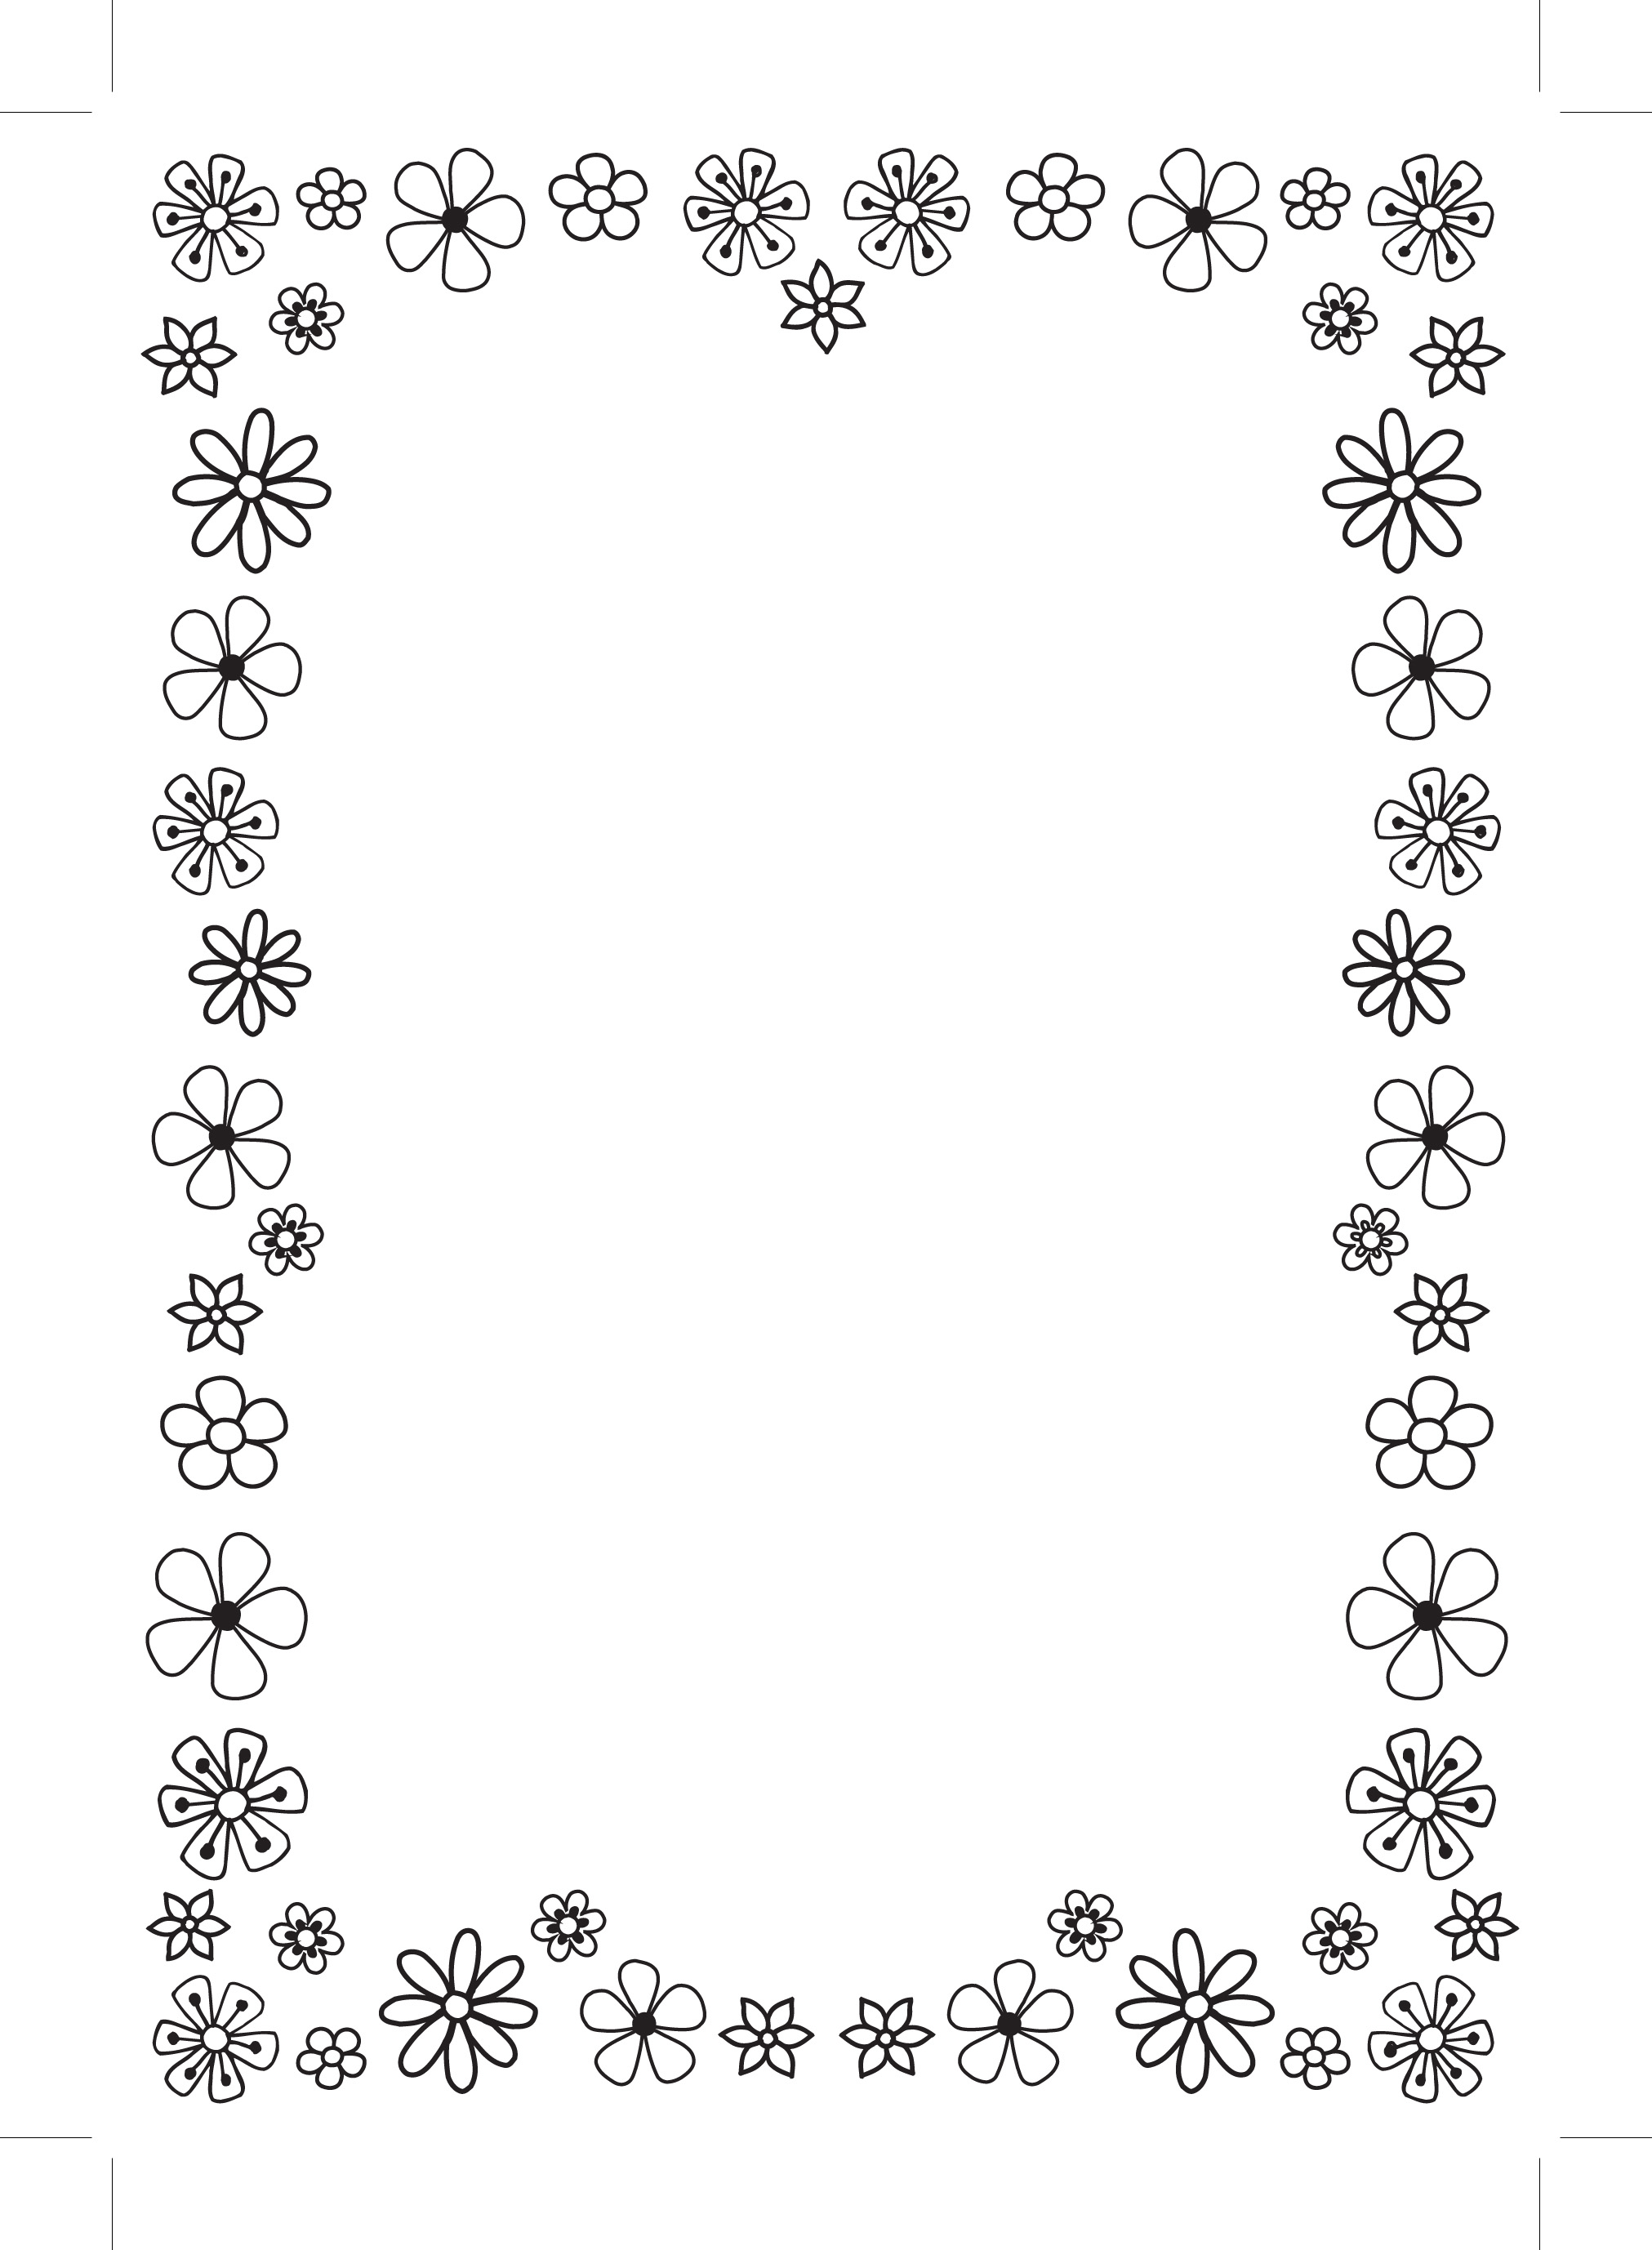 10 flower border design paper images flower page border clip art black and white flower border paper mightylinksfo Image collections